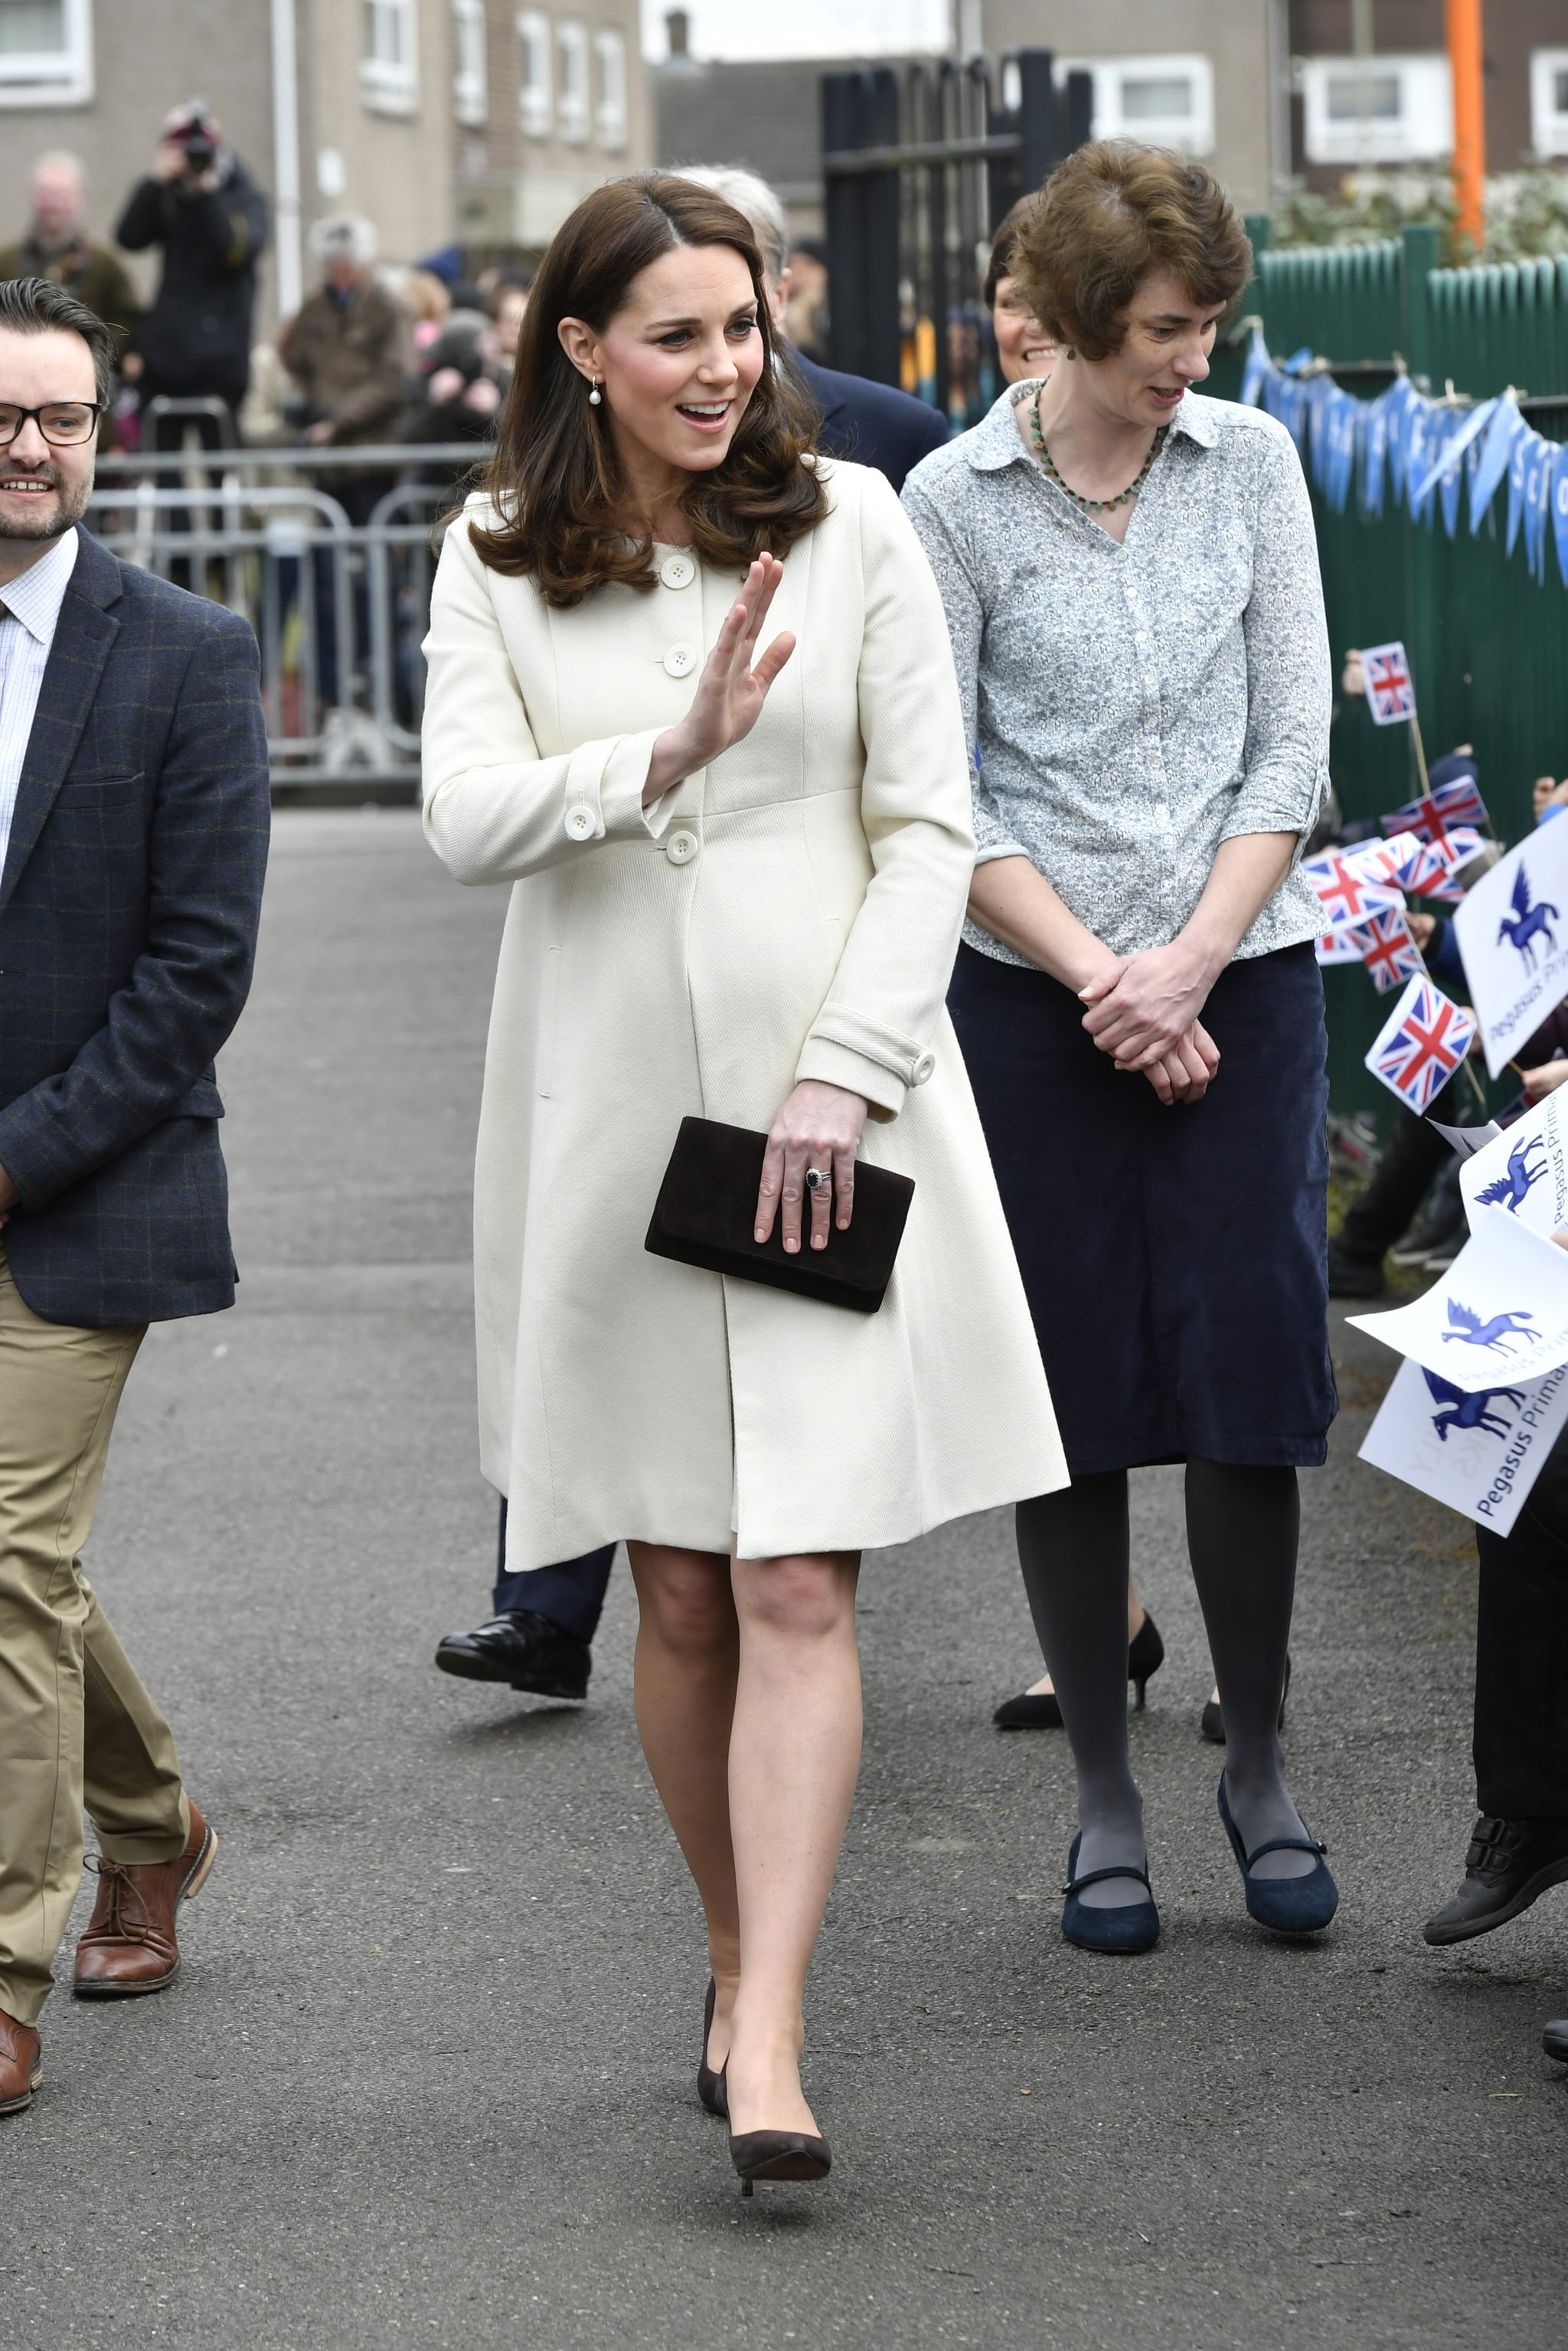 OXFORD, ENGLAND - MARCH 6:  Catherine, The Duchess of Cambridge arrives to learn about the work of the charity Family Links which works closely with schools nationwide to support both children and parents with their emotional health and wellbeing, with an emphasis on early intervention during a visit to Pegasus Primary School in Oxford on March 6, 2018 in Oxford, England.  (Photo by  Arthur Edwards  - WPA Pool/Getty Images)